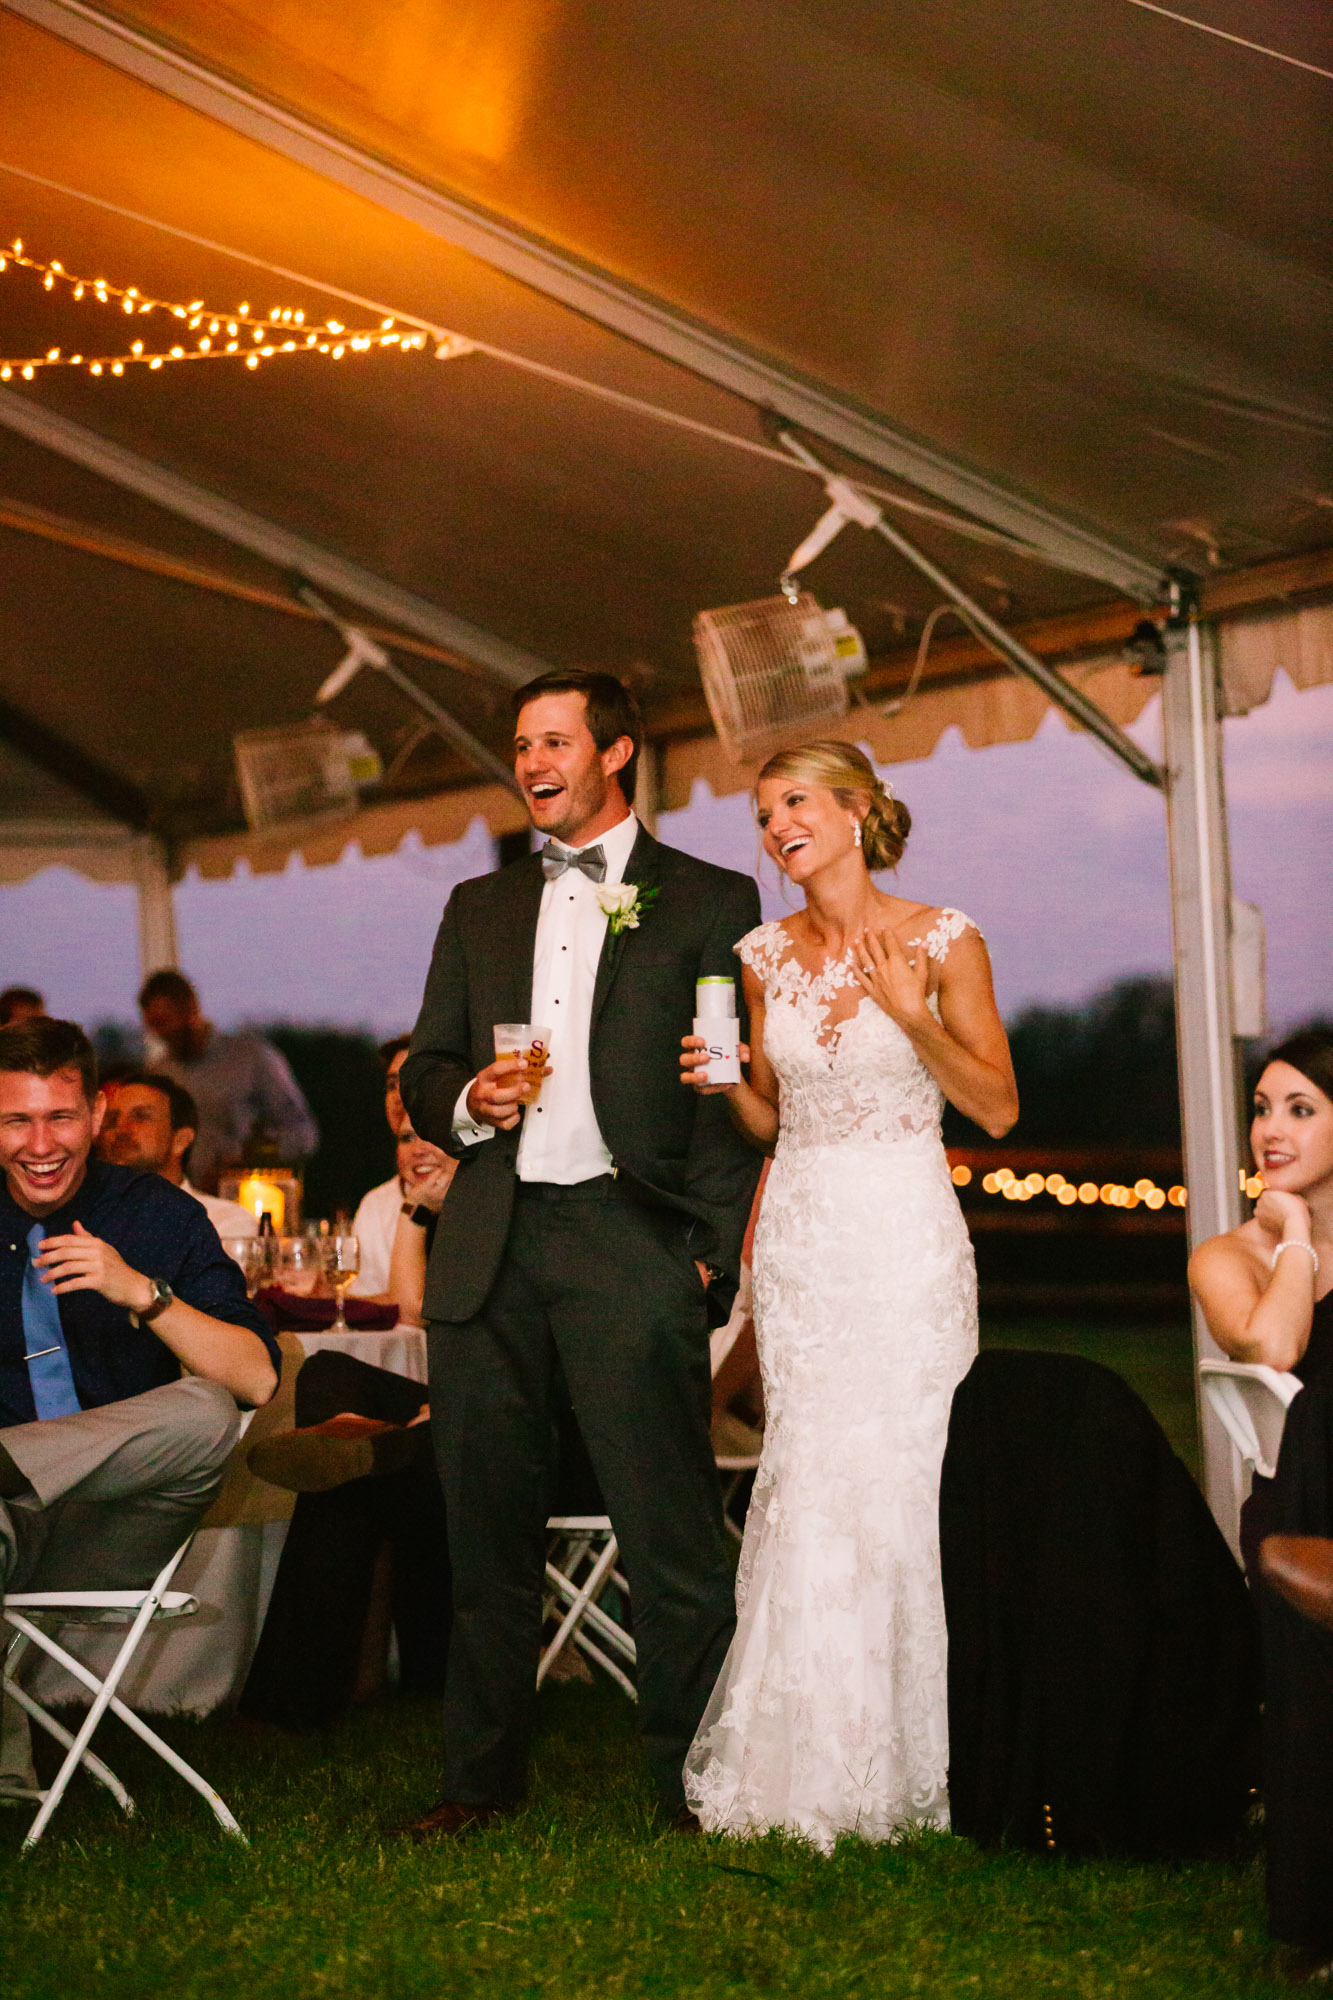 Waynesville, NC Wedding Photography | Bride and Groom Enjoying Toasts